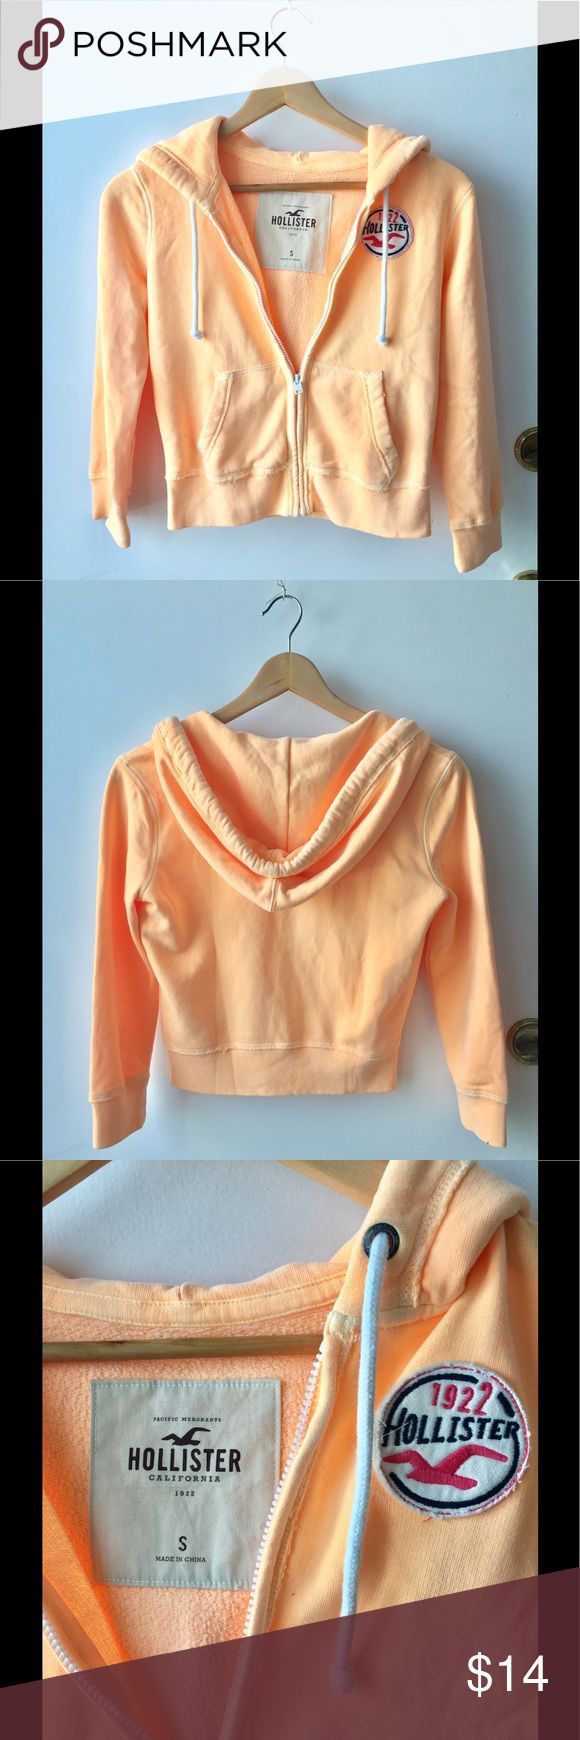 Hollister Orange Zip Up Cute Hollister orange creamsicle color zip up hoodie. Quarter sleeves. Hollister logo on front. Has drawstring detailing around hood. Perfect for summer nights ✨  Size: S  Condition:  Pre-owned. No rips or stains. In excellent condition! Hollister Sweaters Crew & Scoop Necks